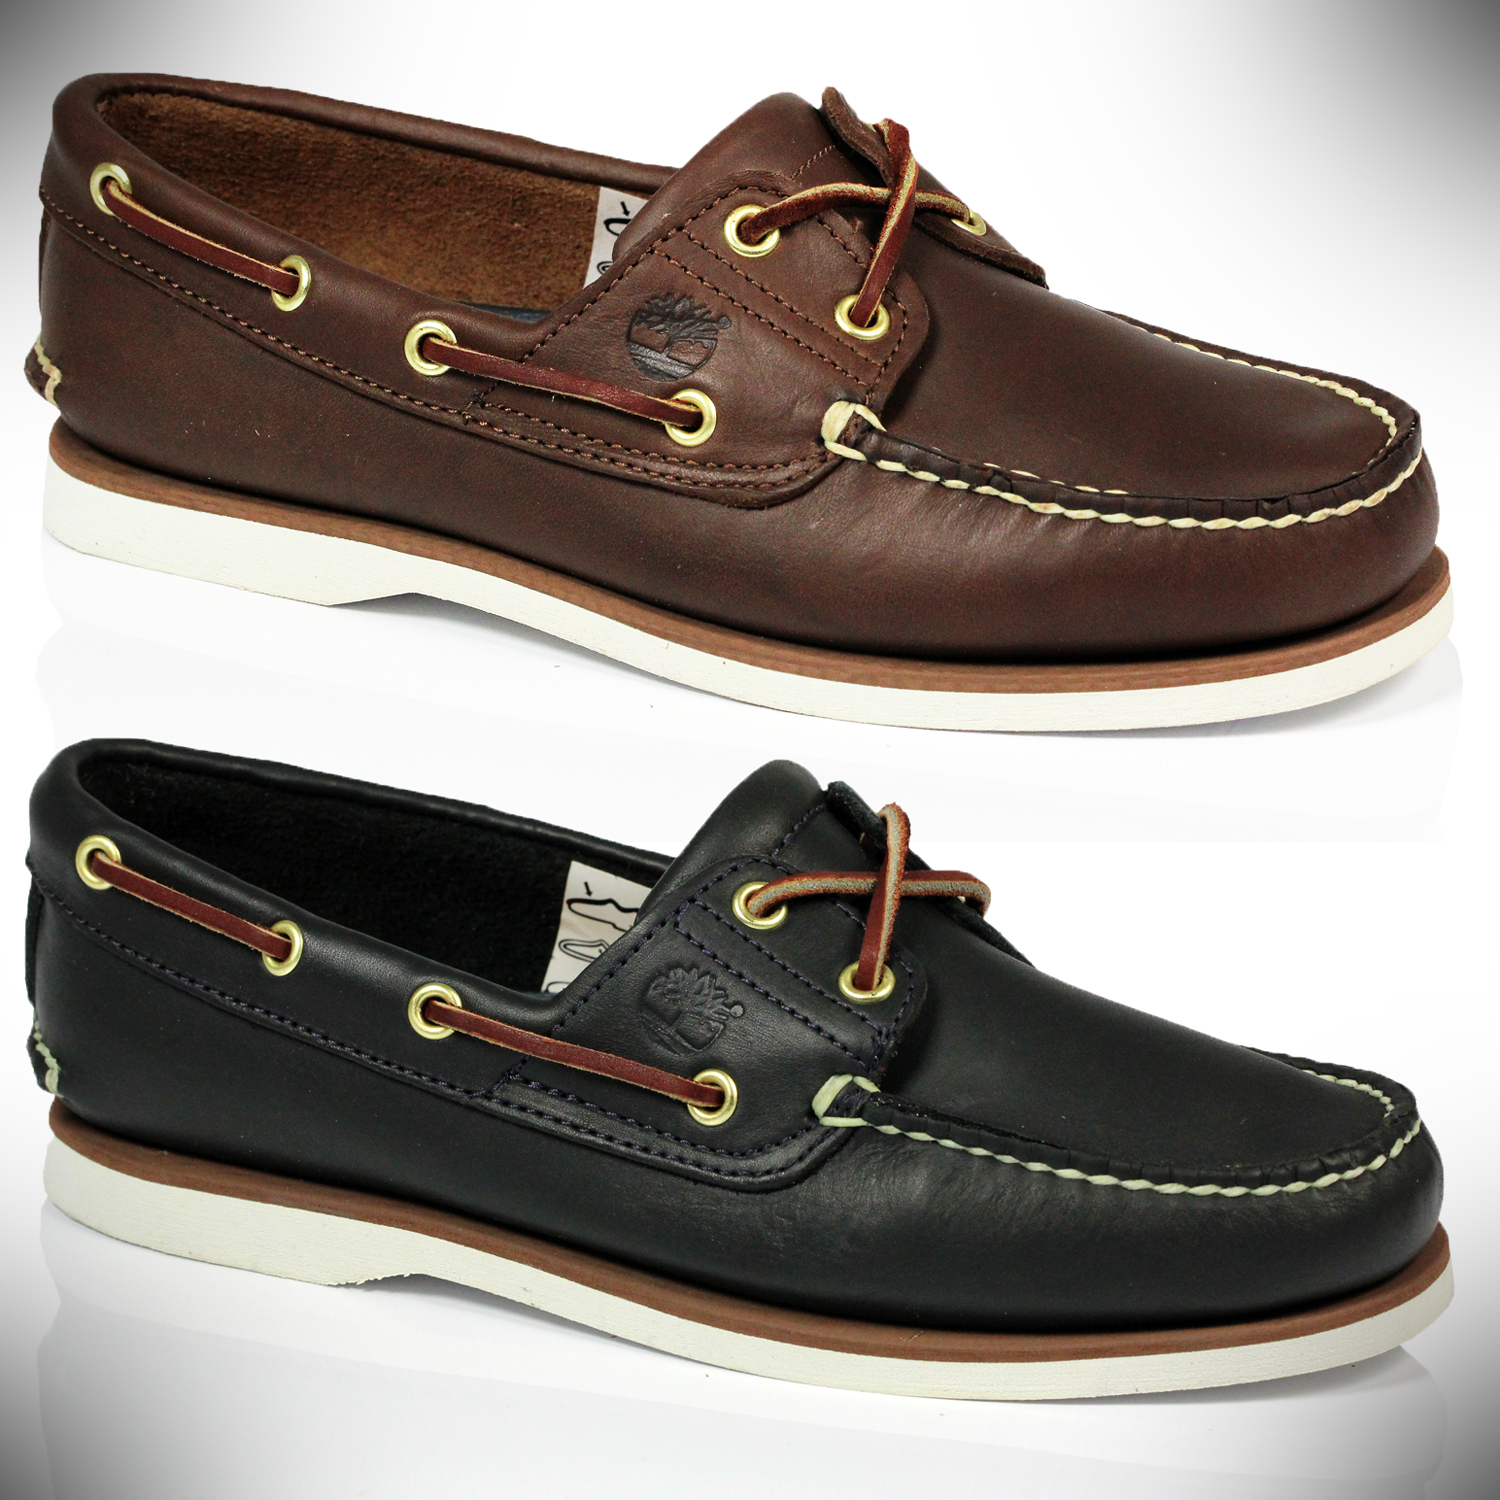 Timberland Classic Two-Eye – boat shoes that are business casual